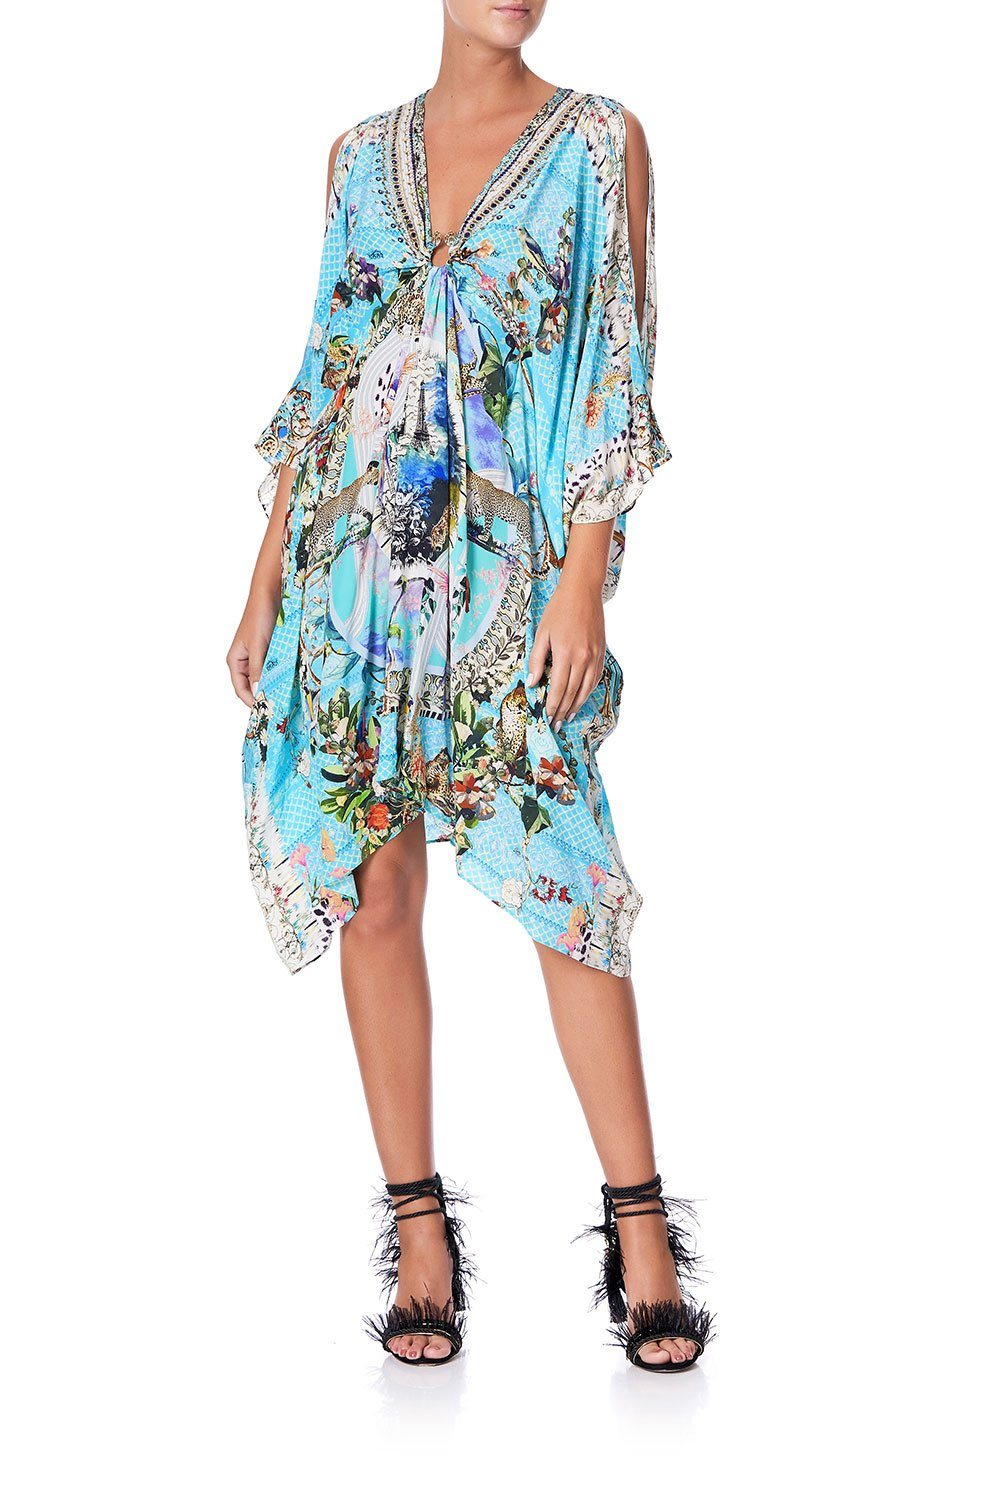 Image of SHORT KAFTAN WITH HARDWARE GIRL FROM ST TROPEZ